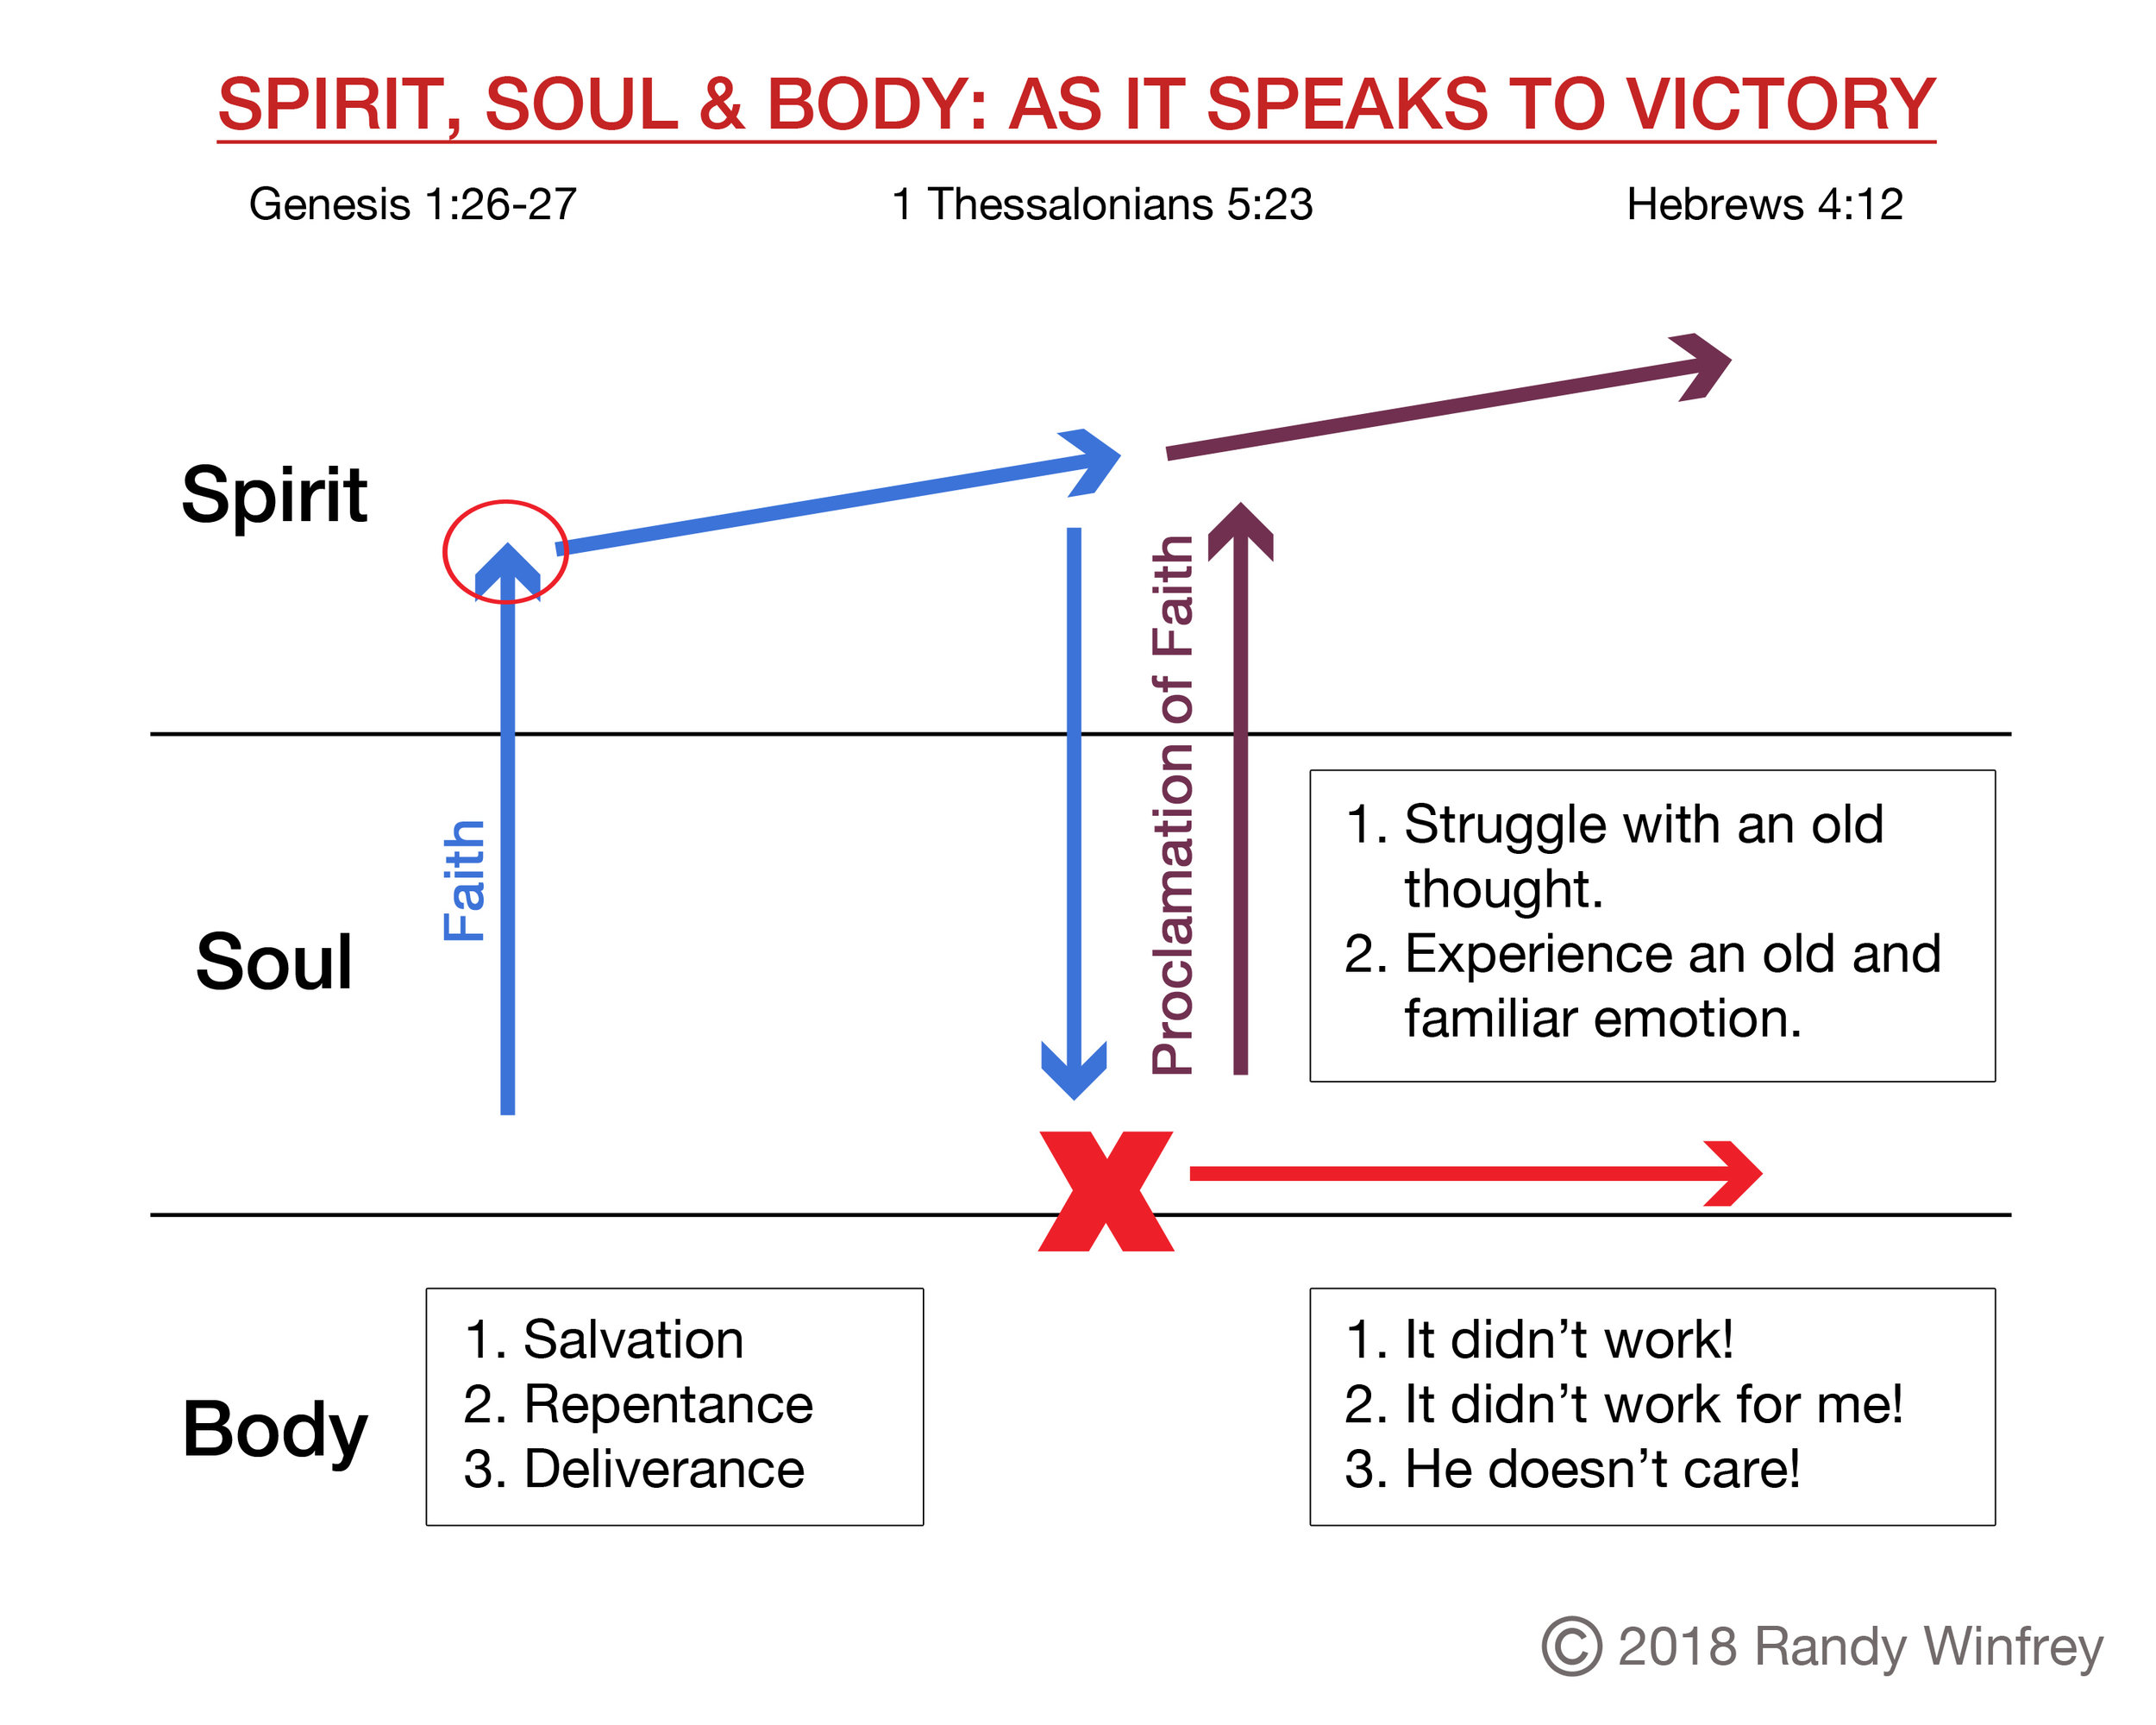 visual_body-soul-spirit-victory.jpg